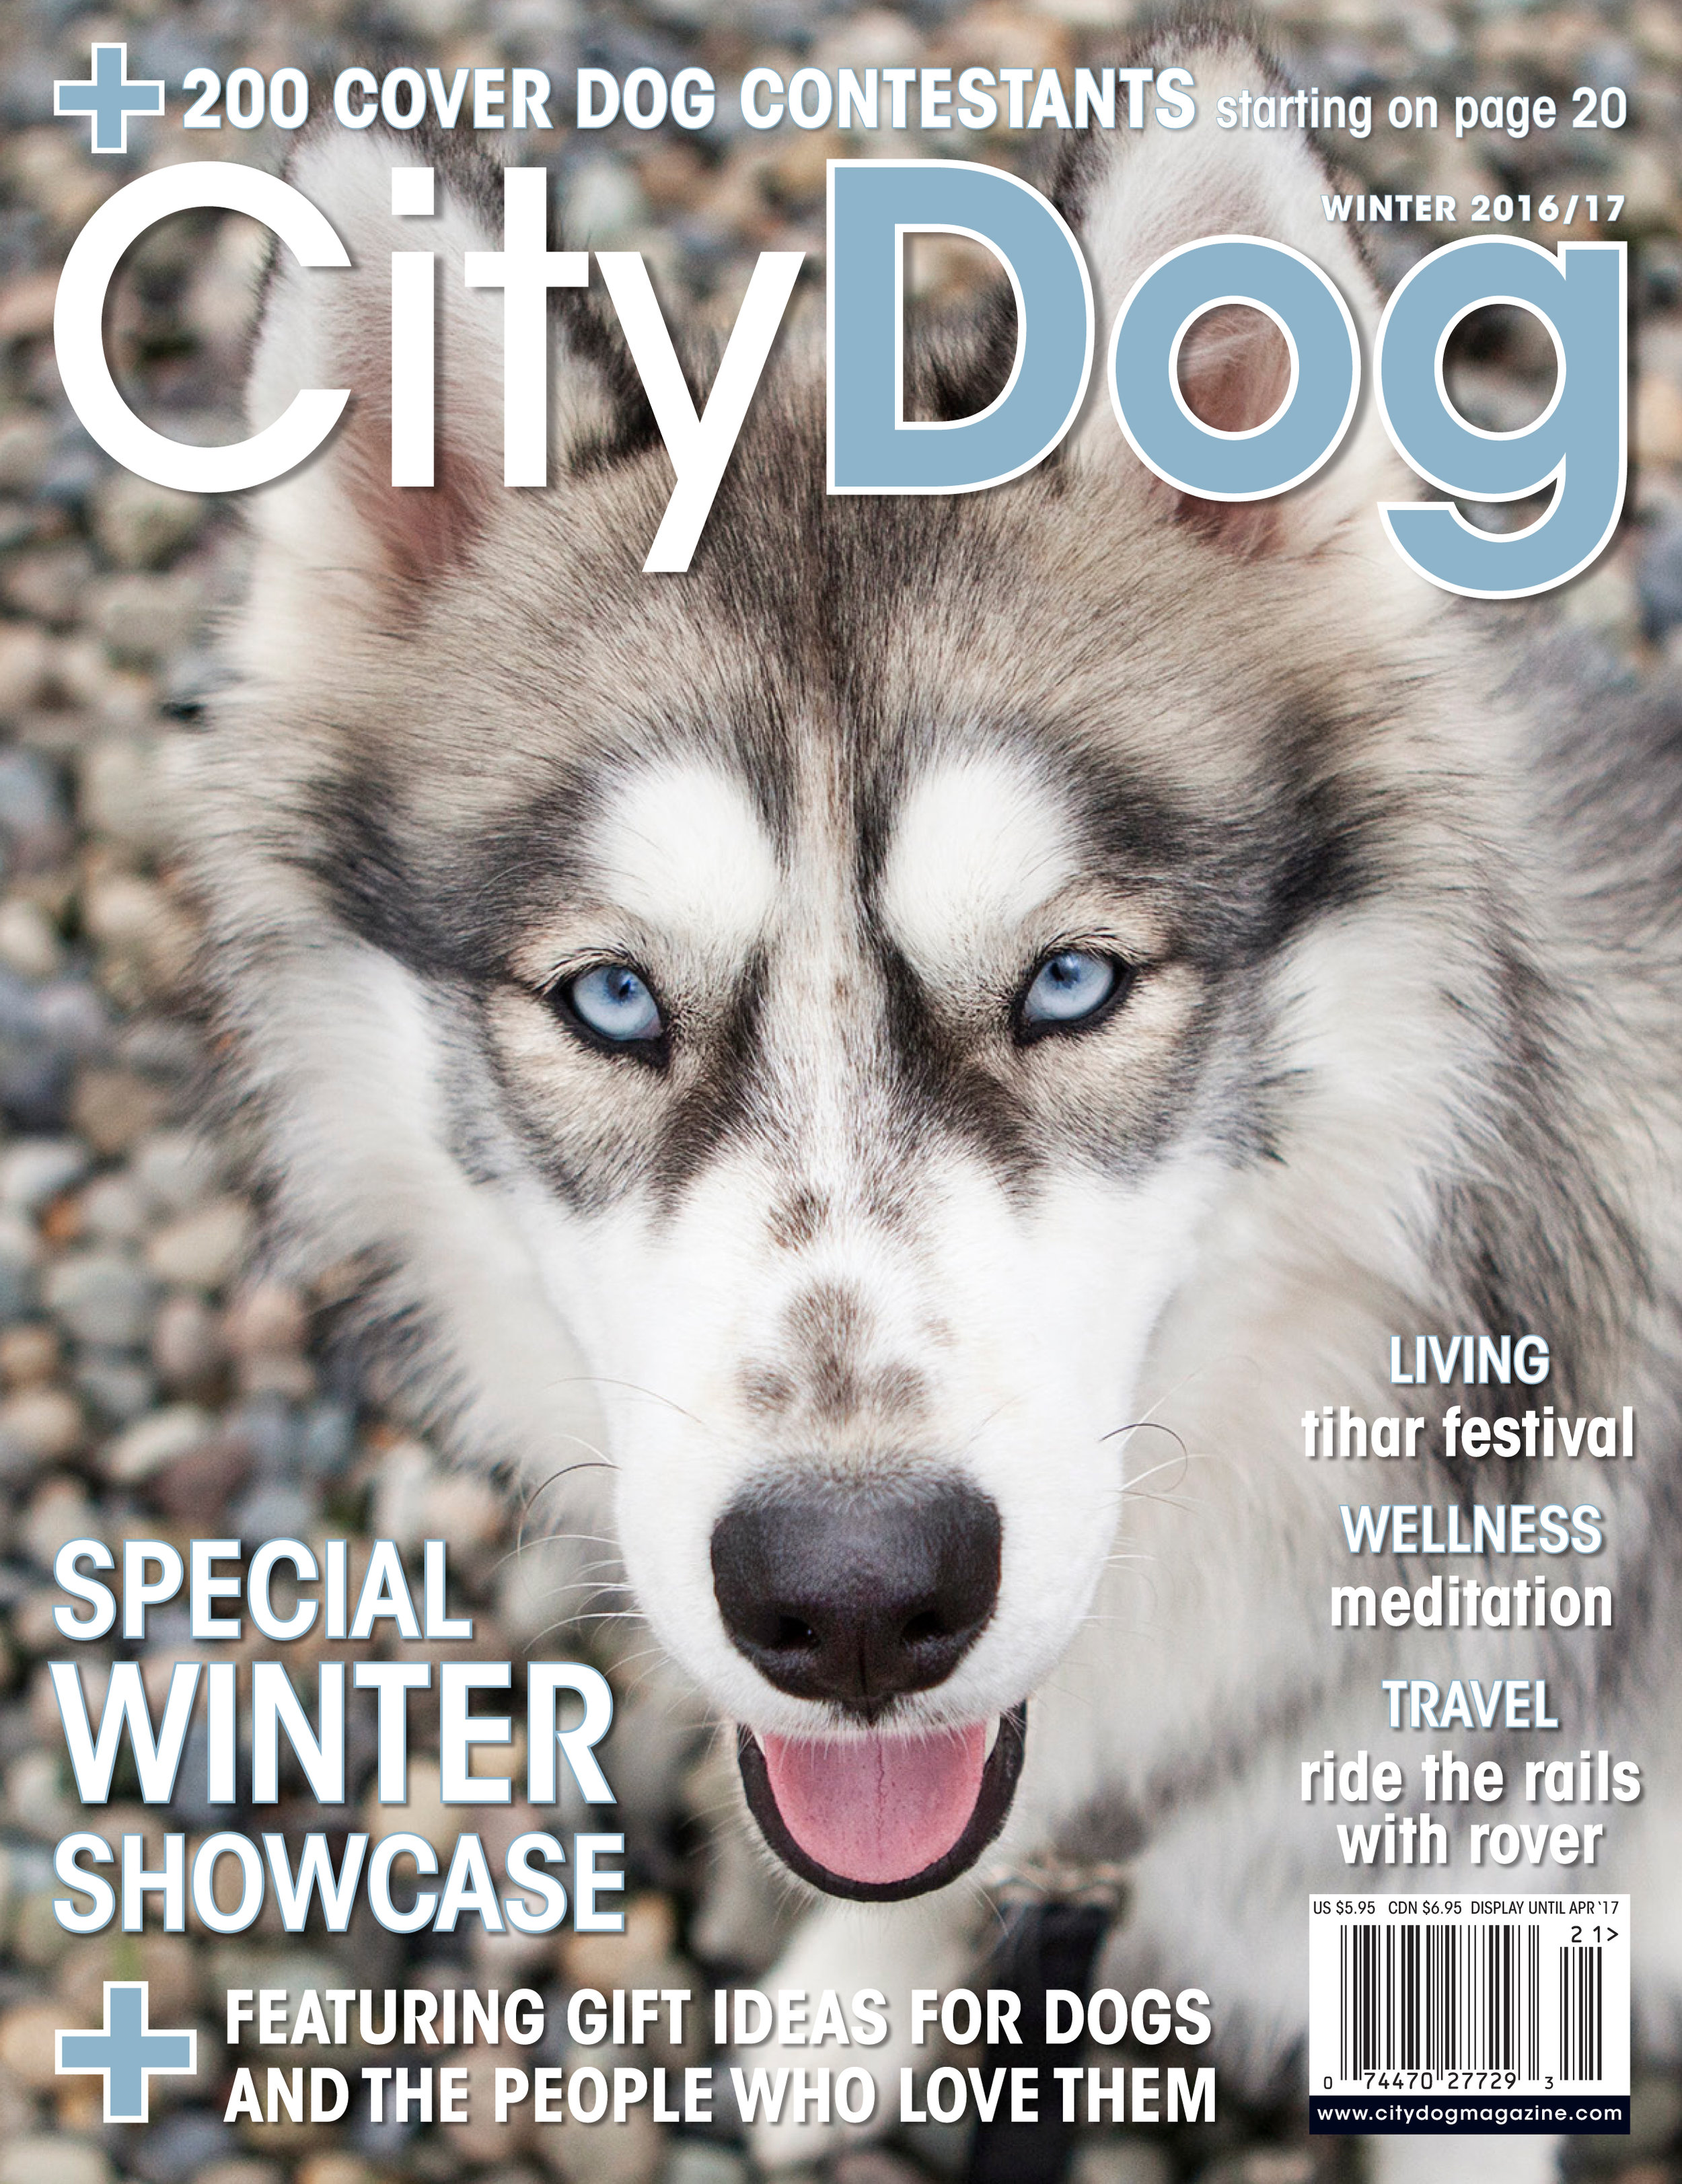 CityDog Magazine Holiday-Winter 2016 COVER.jpg